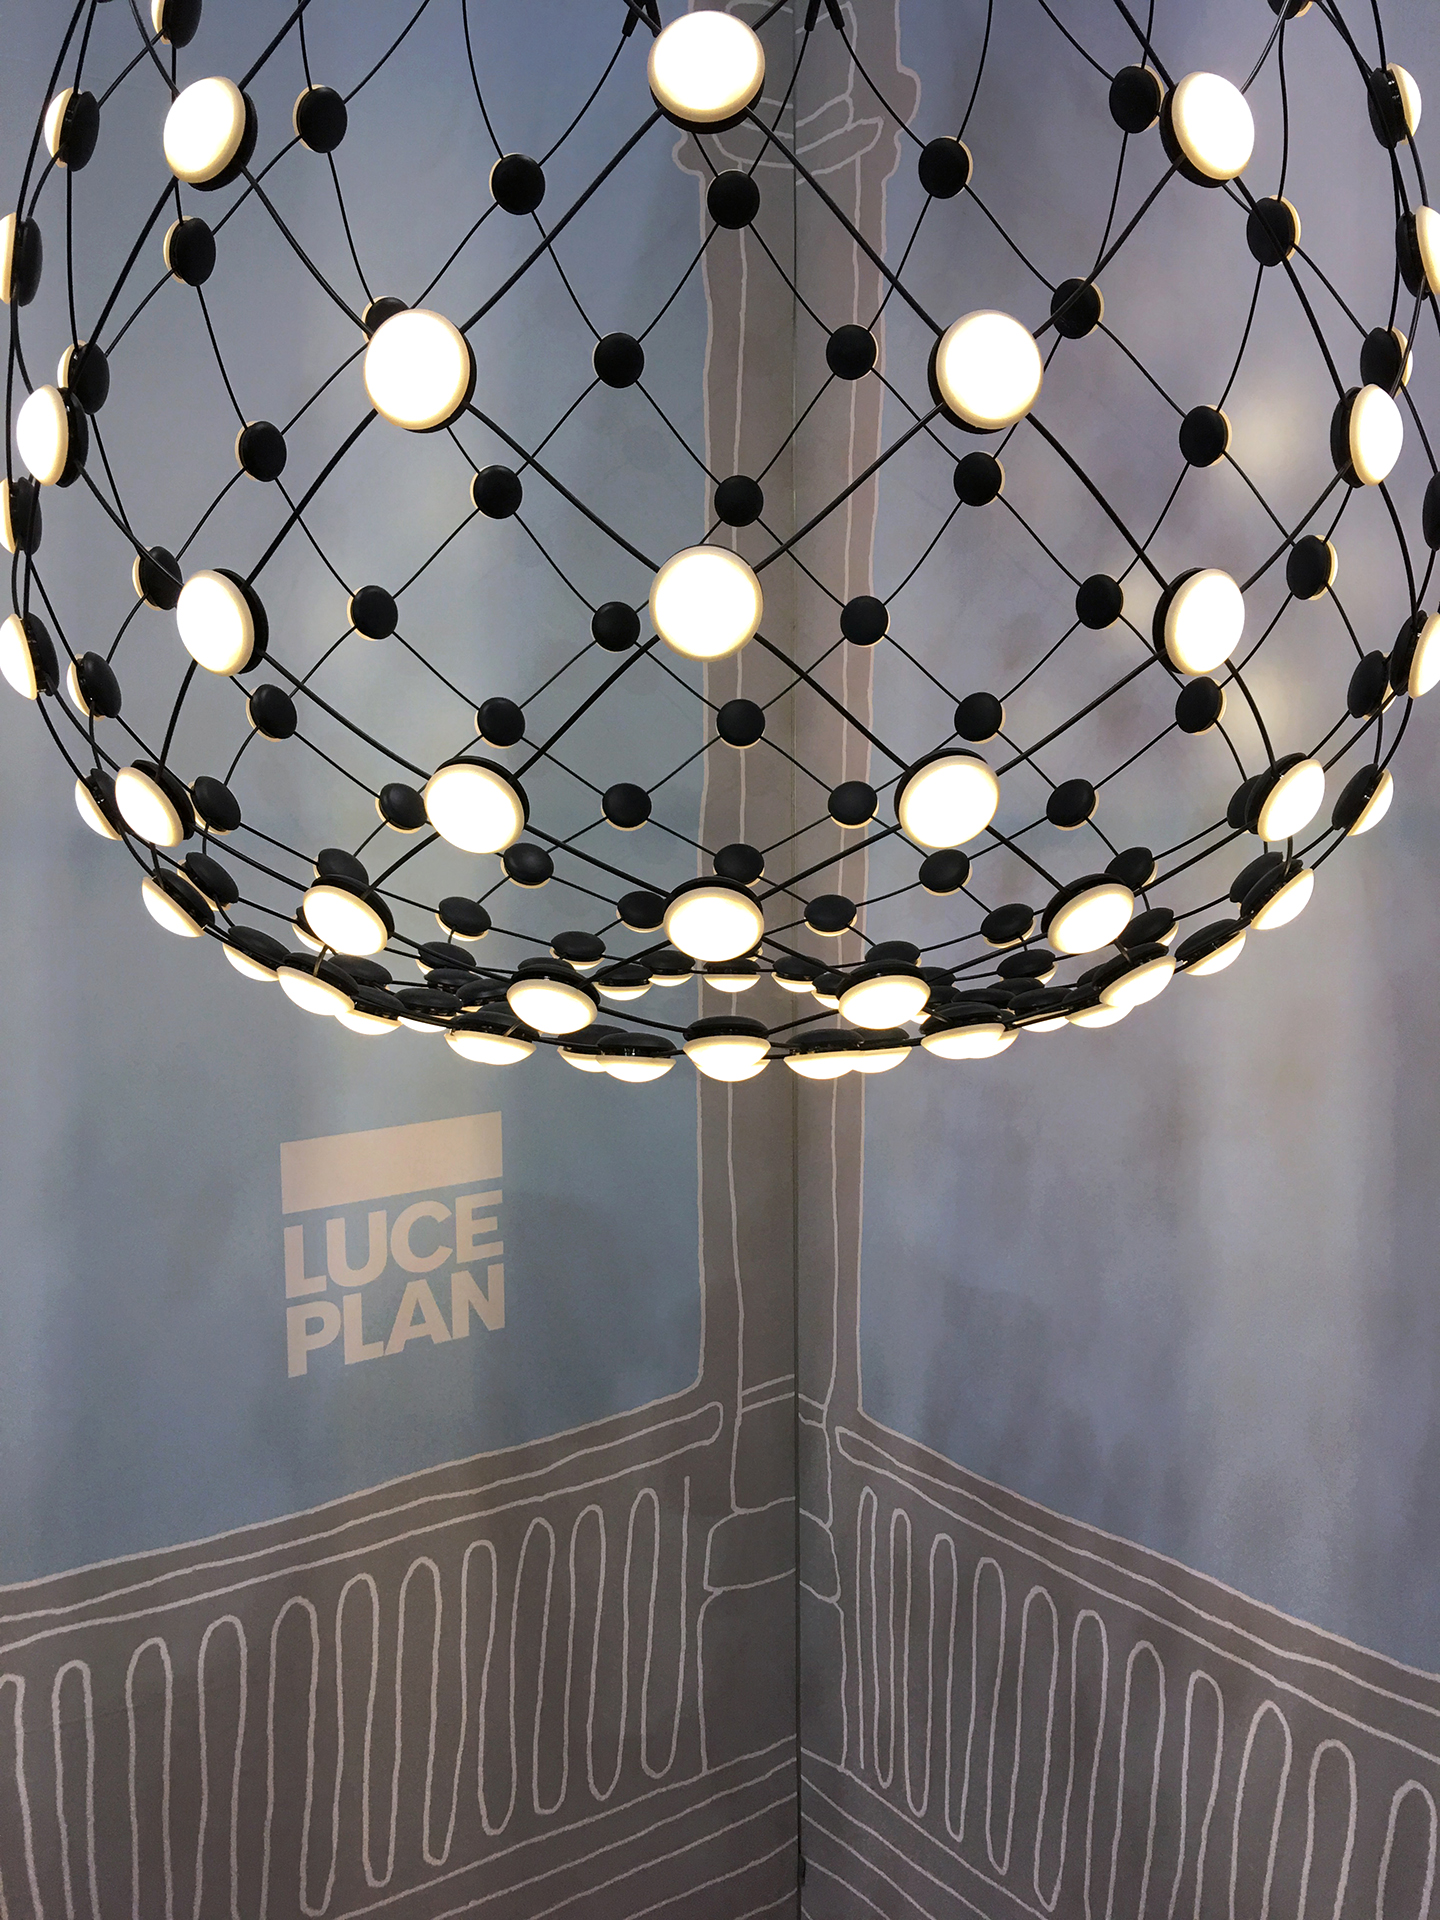 Mesh suspension light for Luceplan by Francisco Gomez Paz.